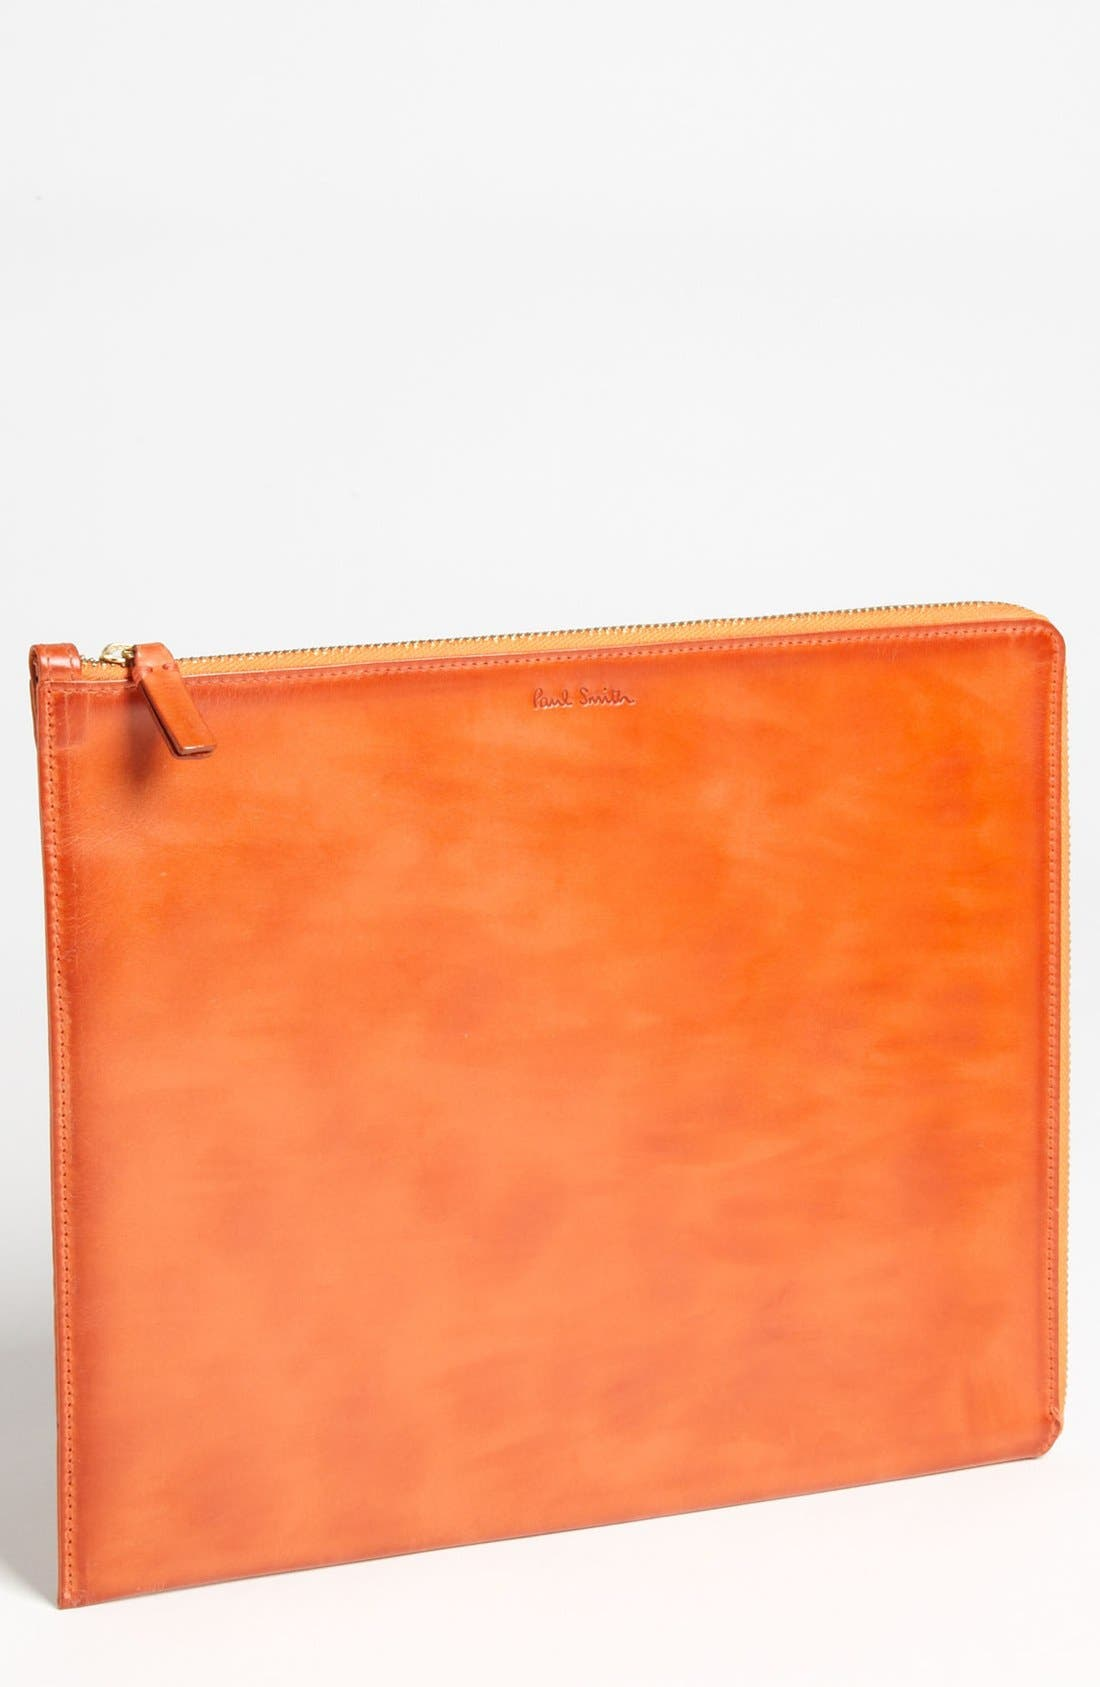 Main Image - Paul Smith Accessories Burnished Leather Tablet Case